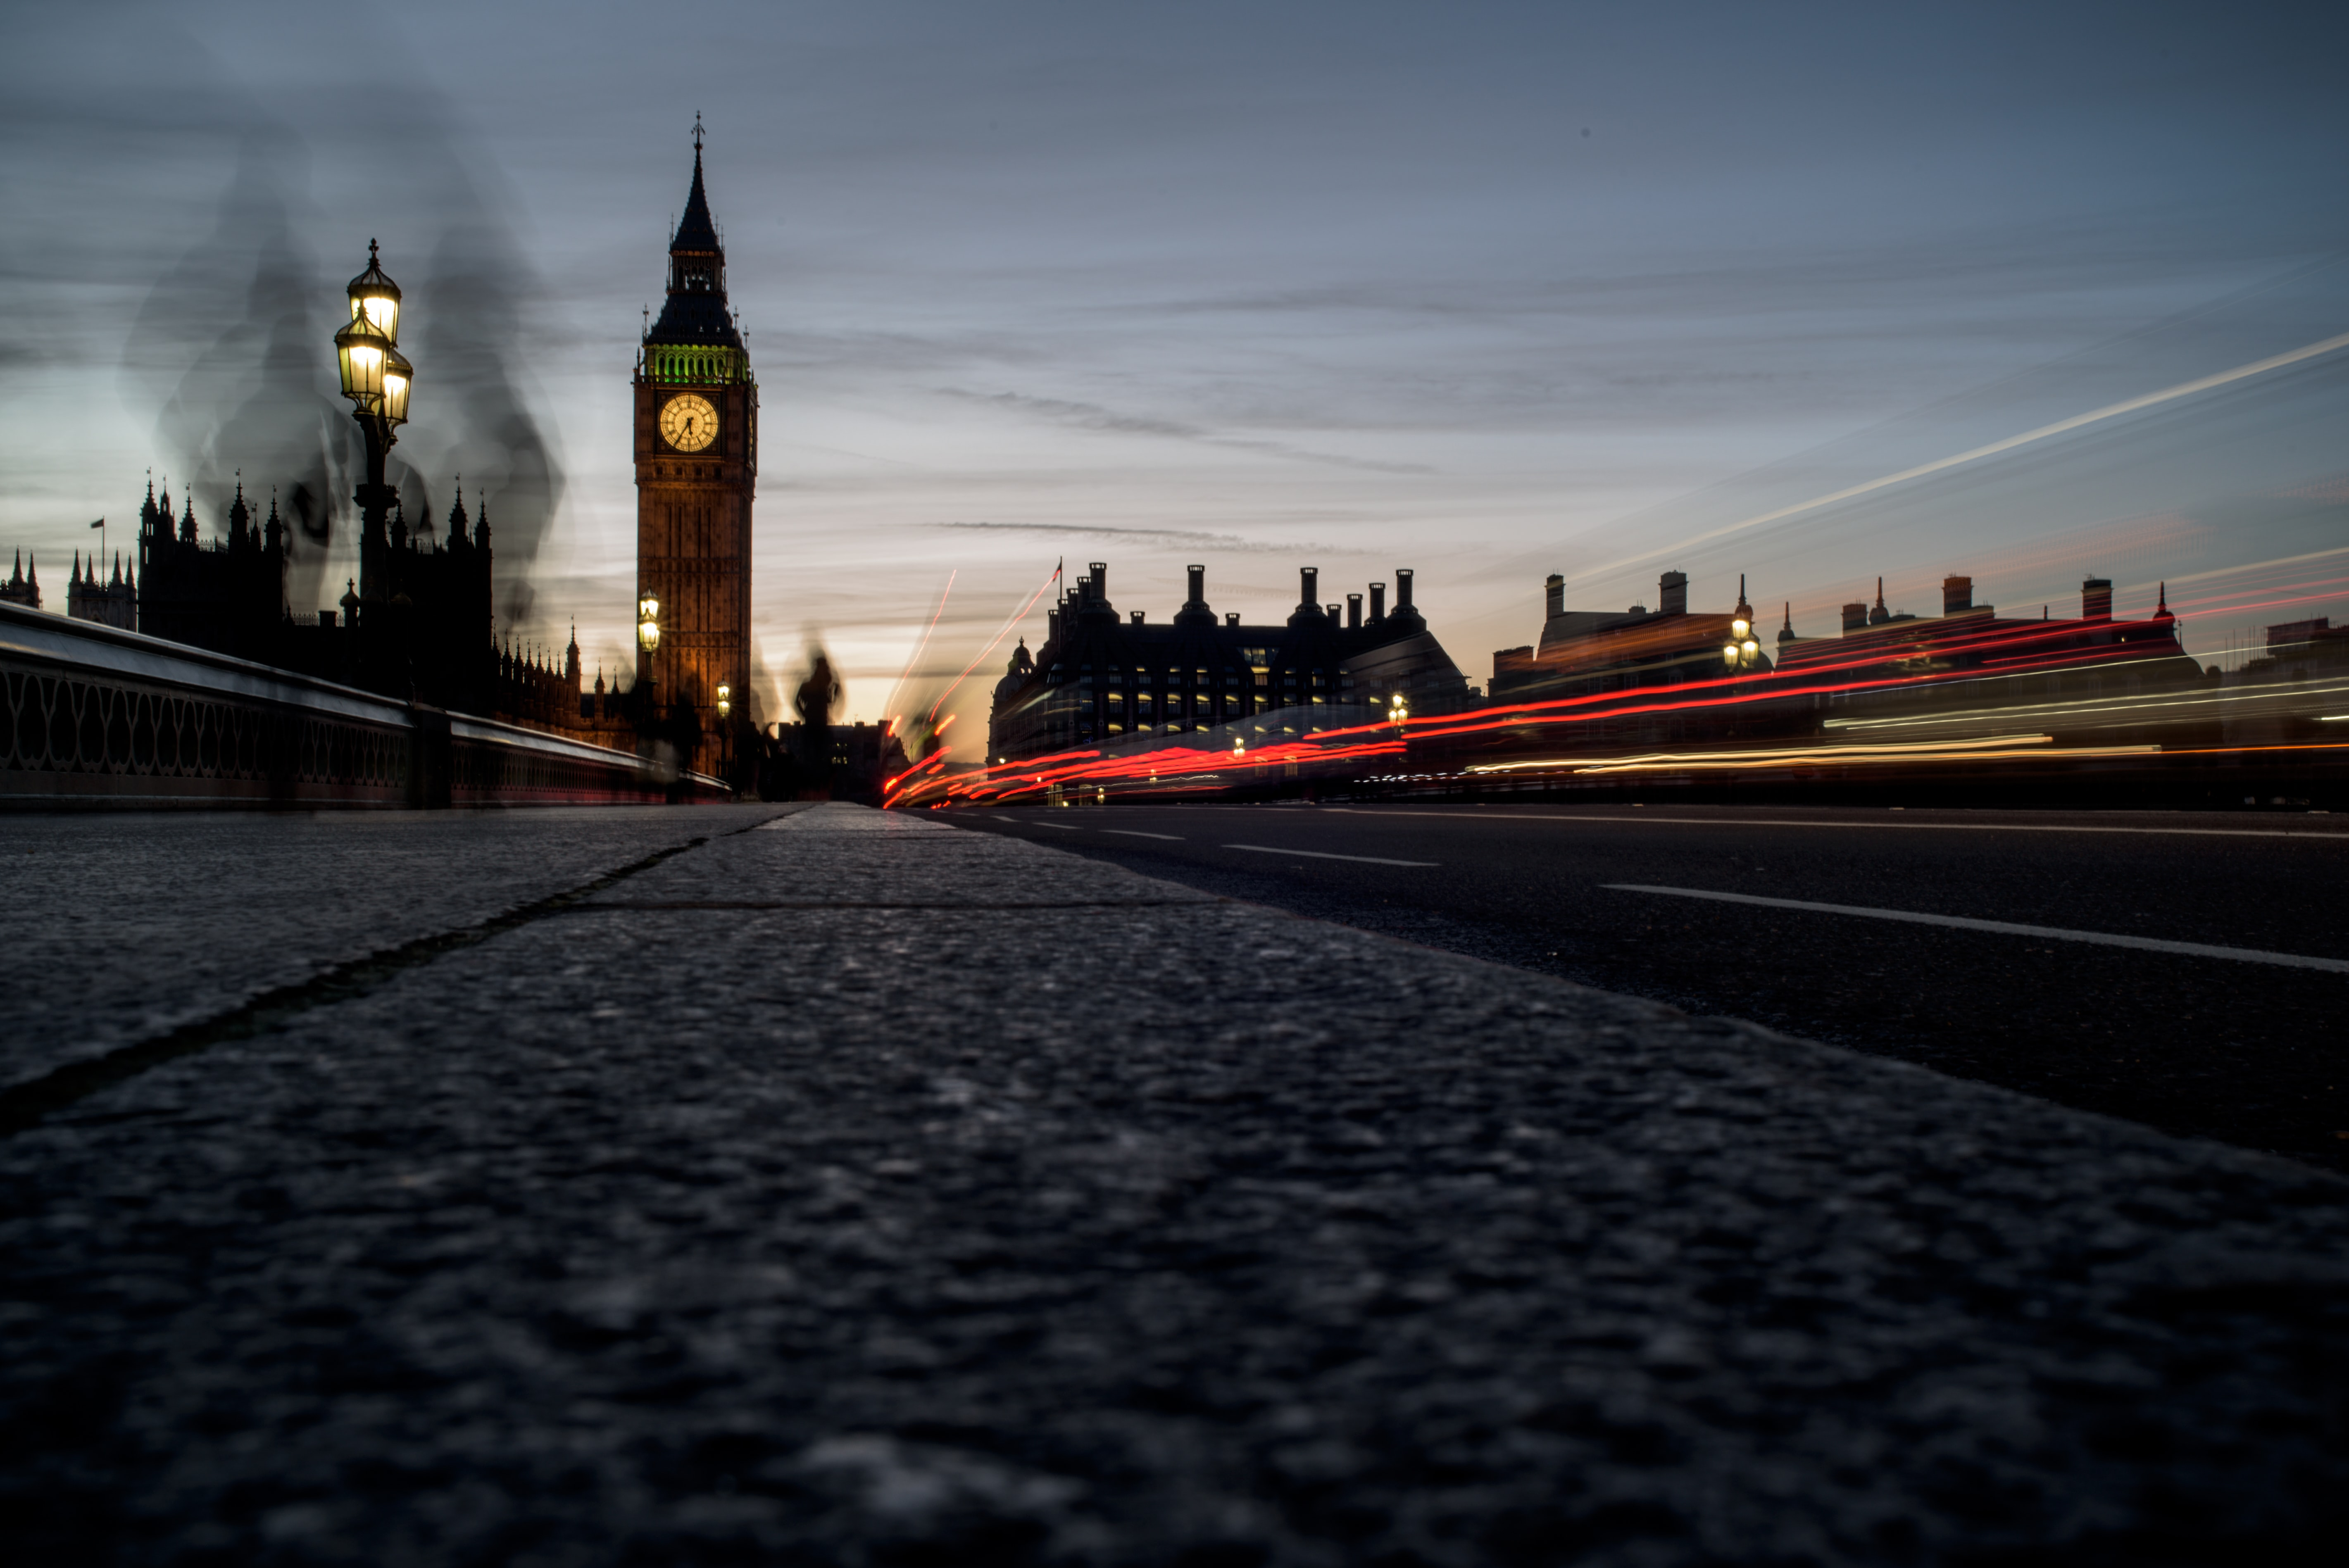 time lapse photography of street with Elizabeth Tower in background